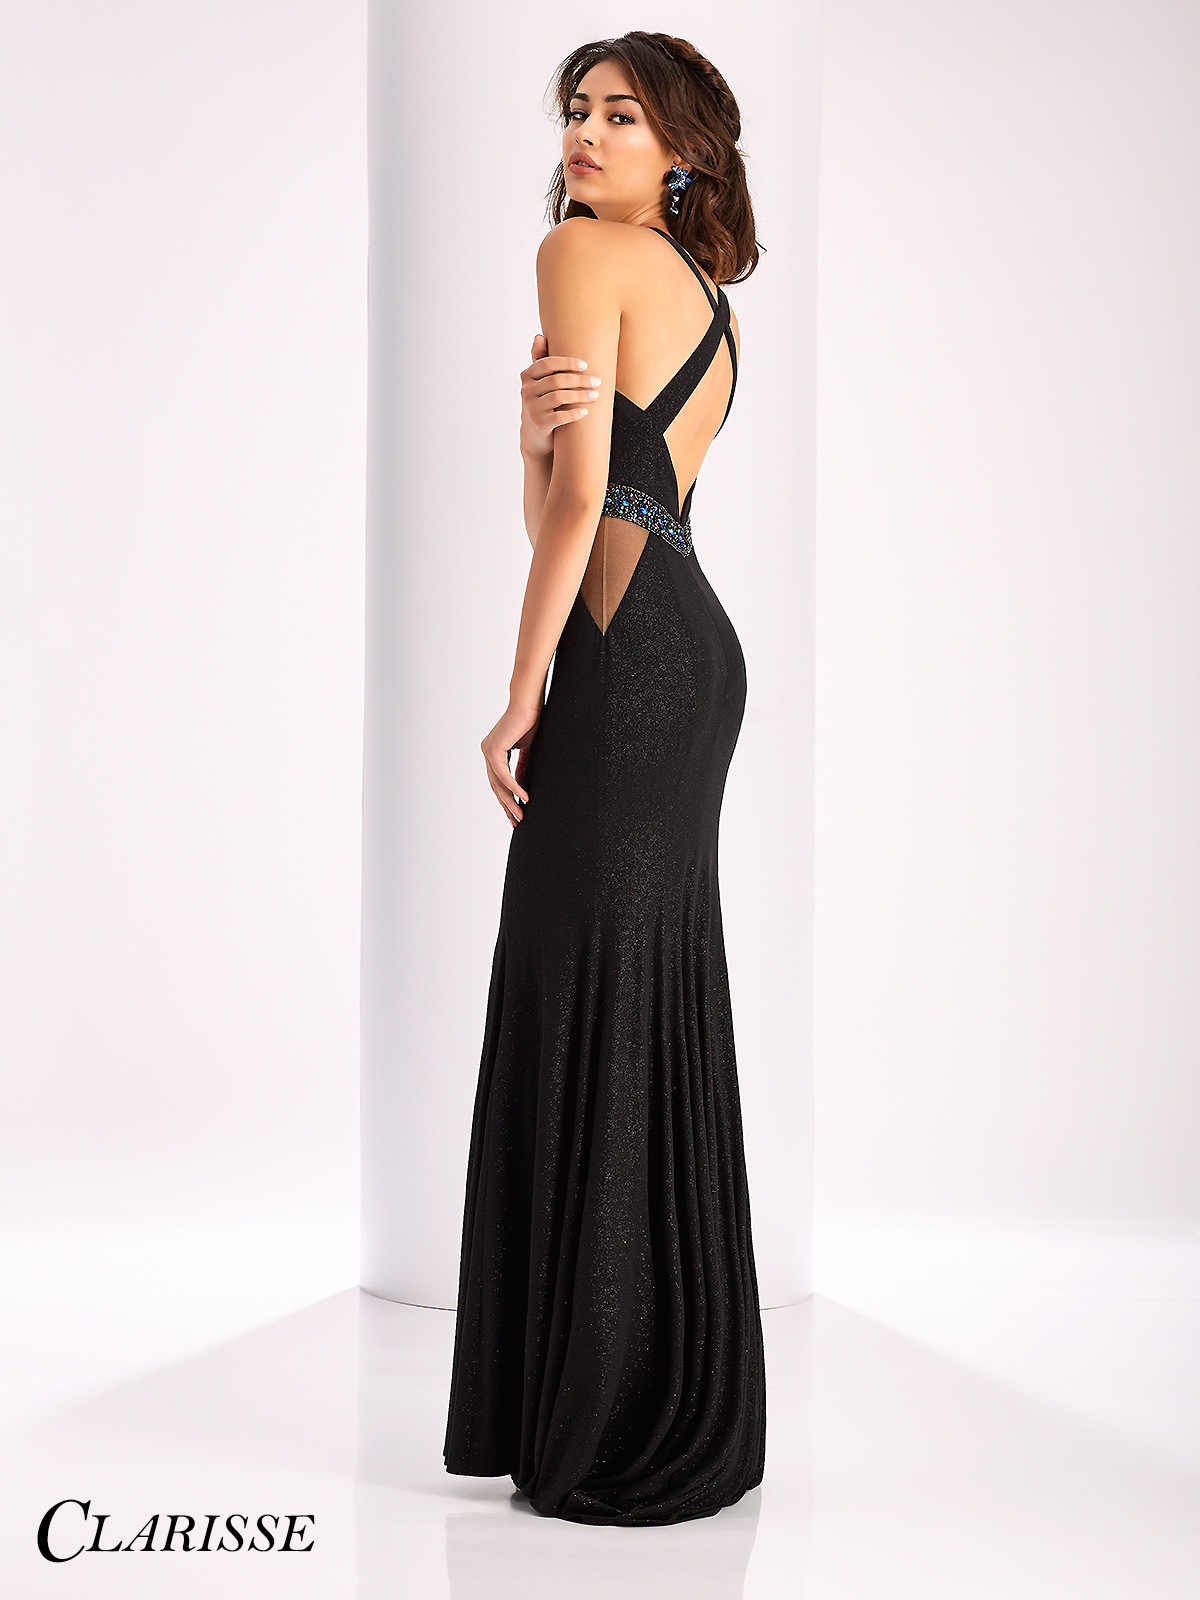 Clarisse Prom Dress 3102 | Promgirl.net